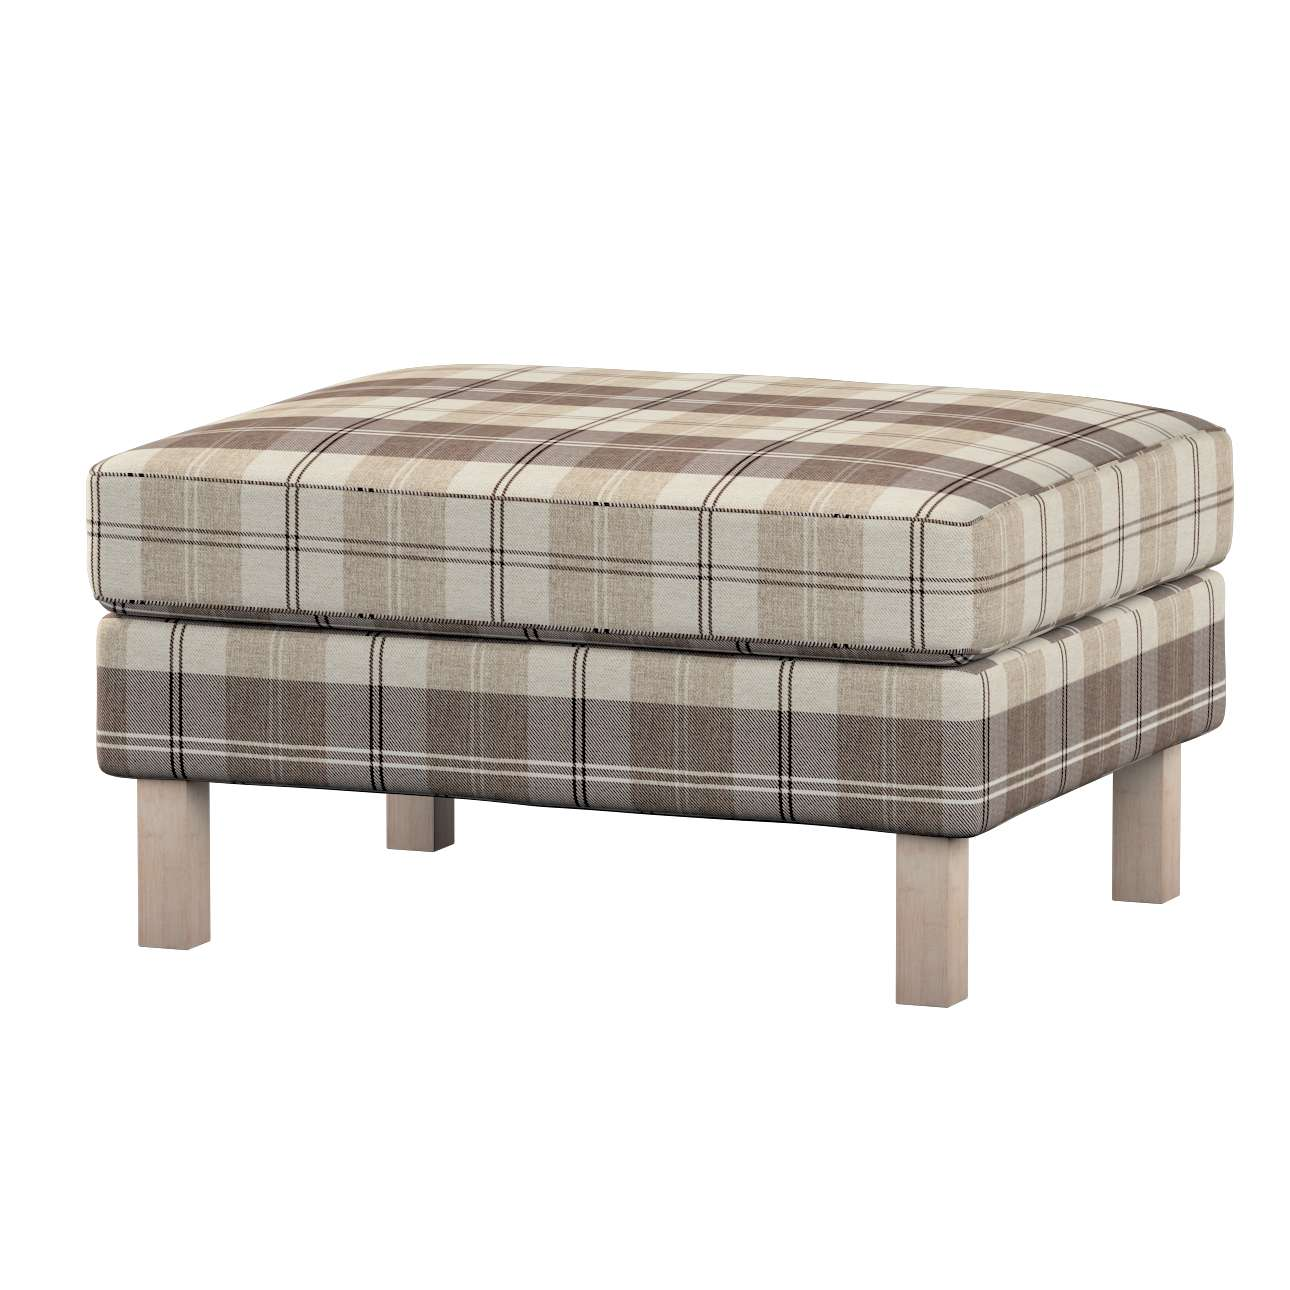 Karlstad footstool cover Karlstad footstool cover in collection Edinburgh, fabric: 115-80